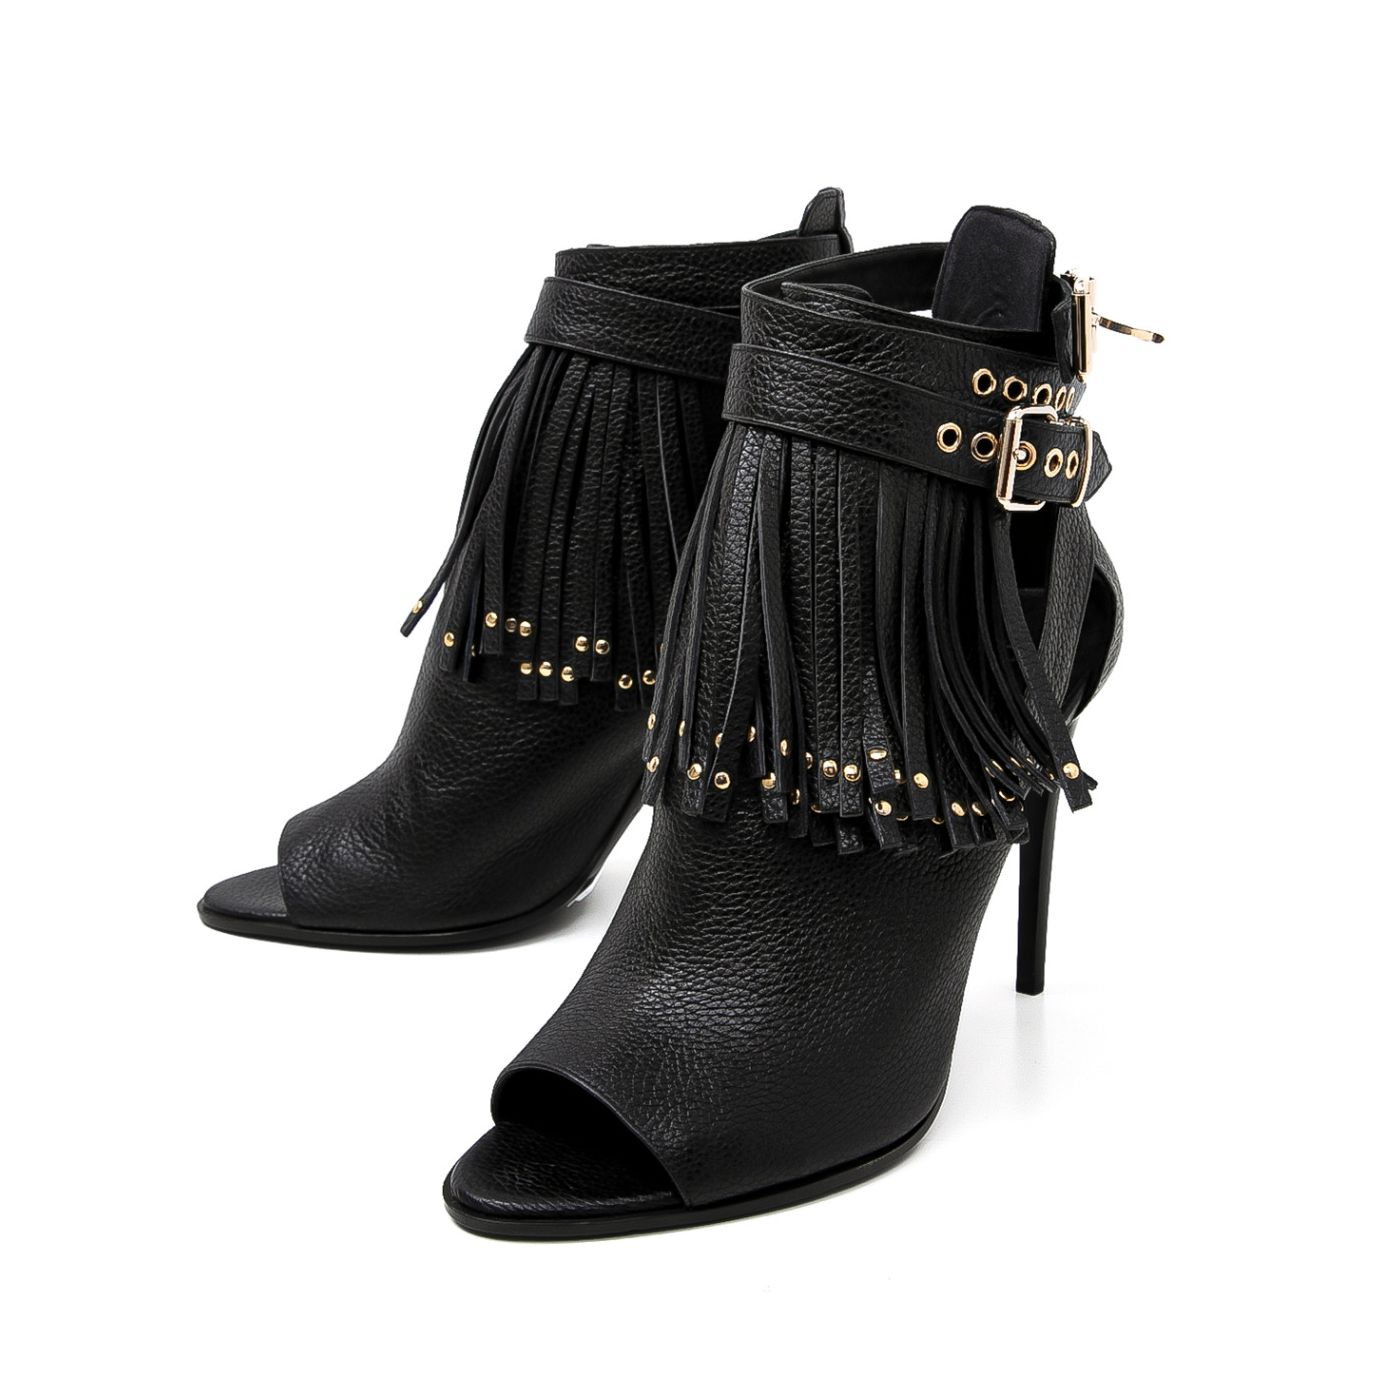 Burberry Black Overfields Fringes Peep Toe Ankle Boots 39